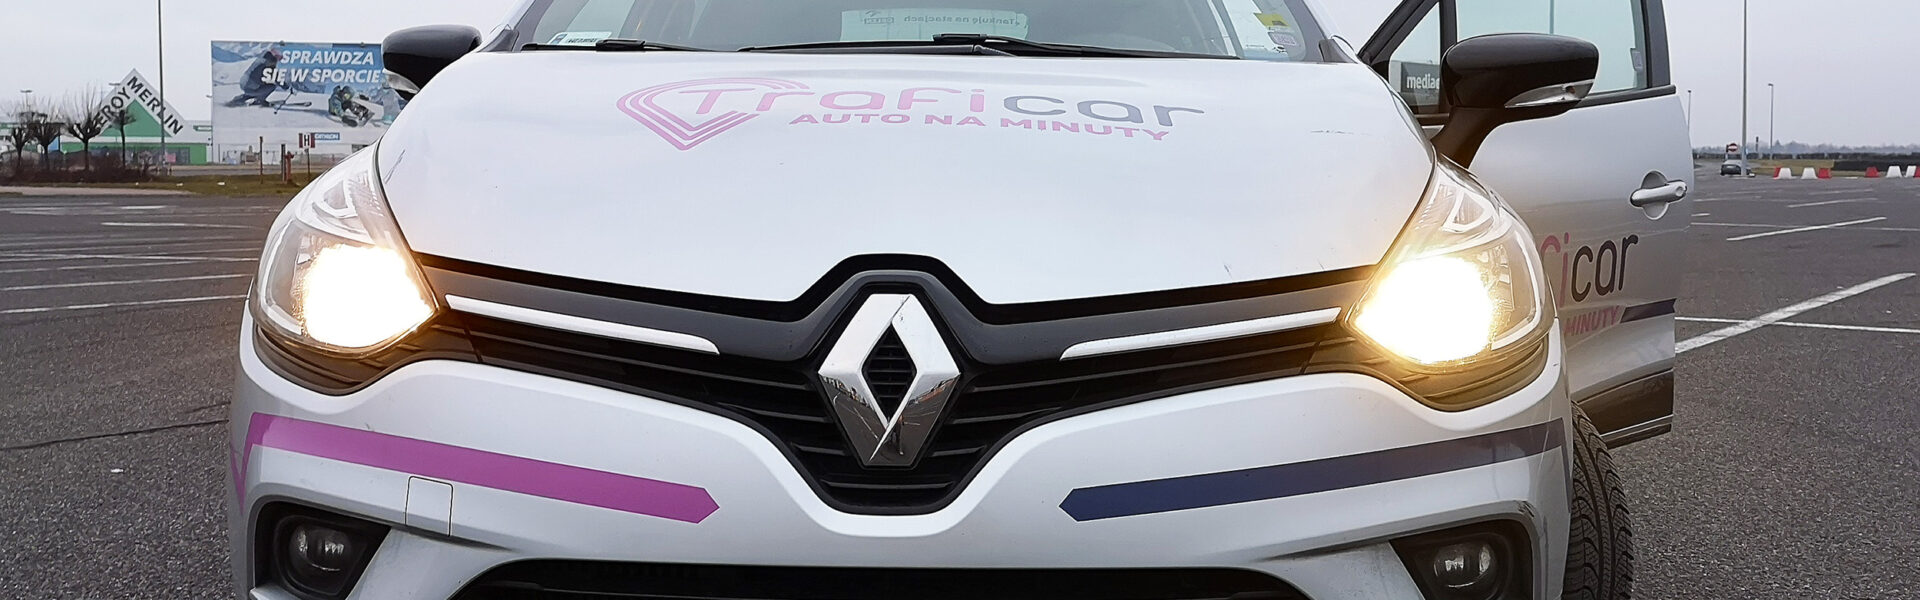 renault clio na minuty traficar carsharing